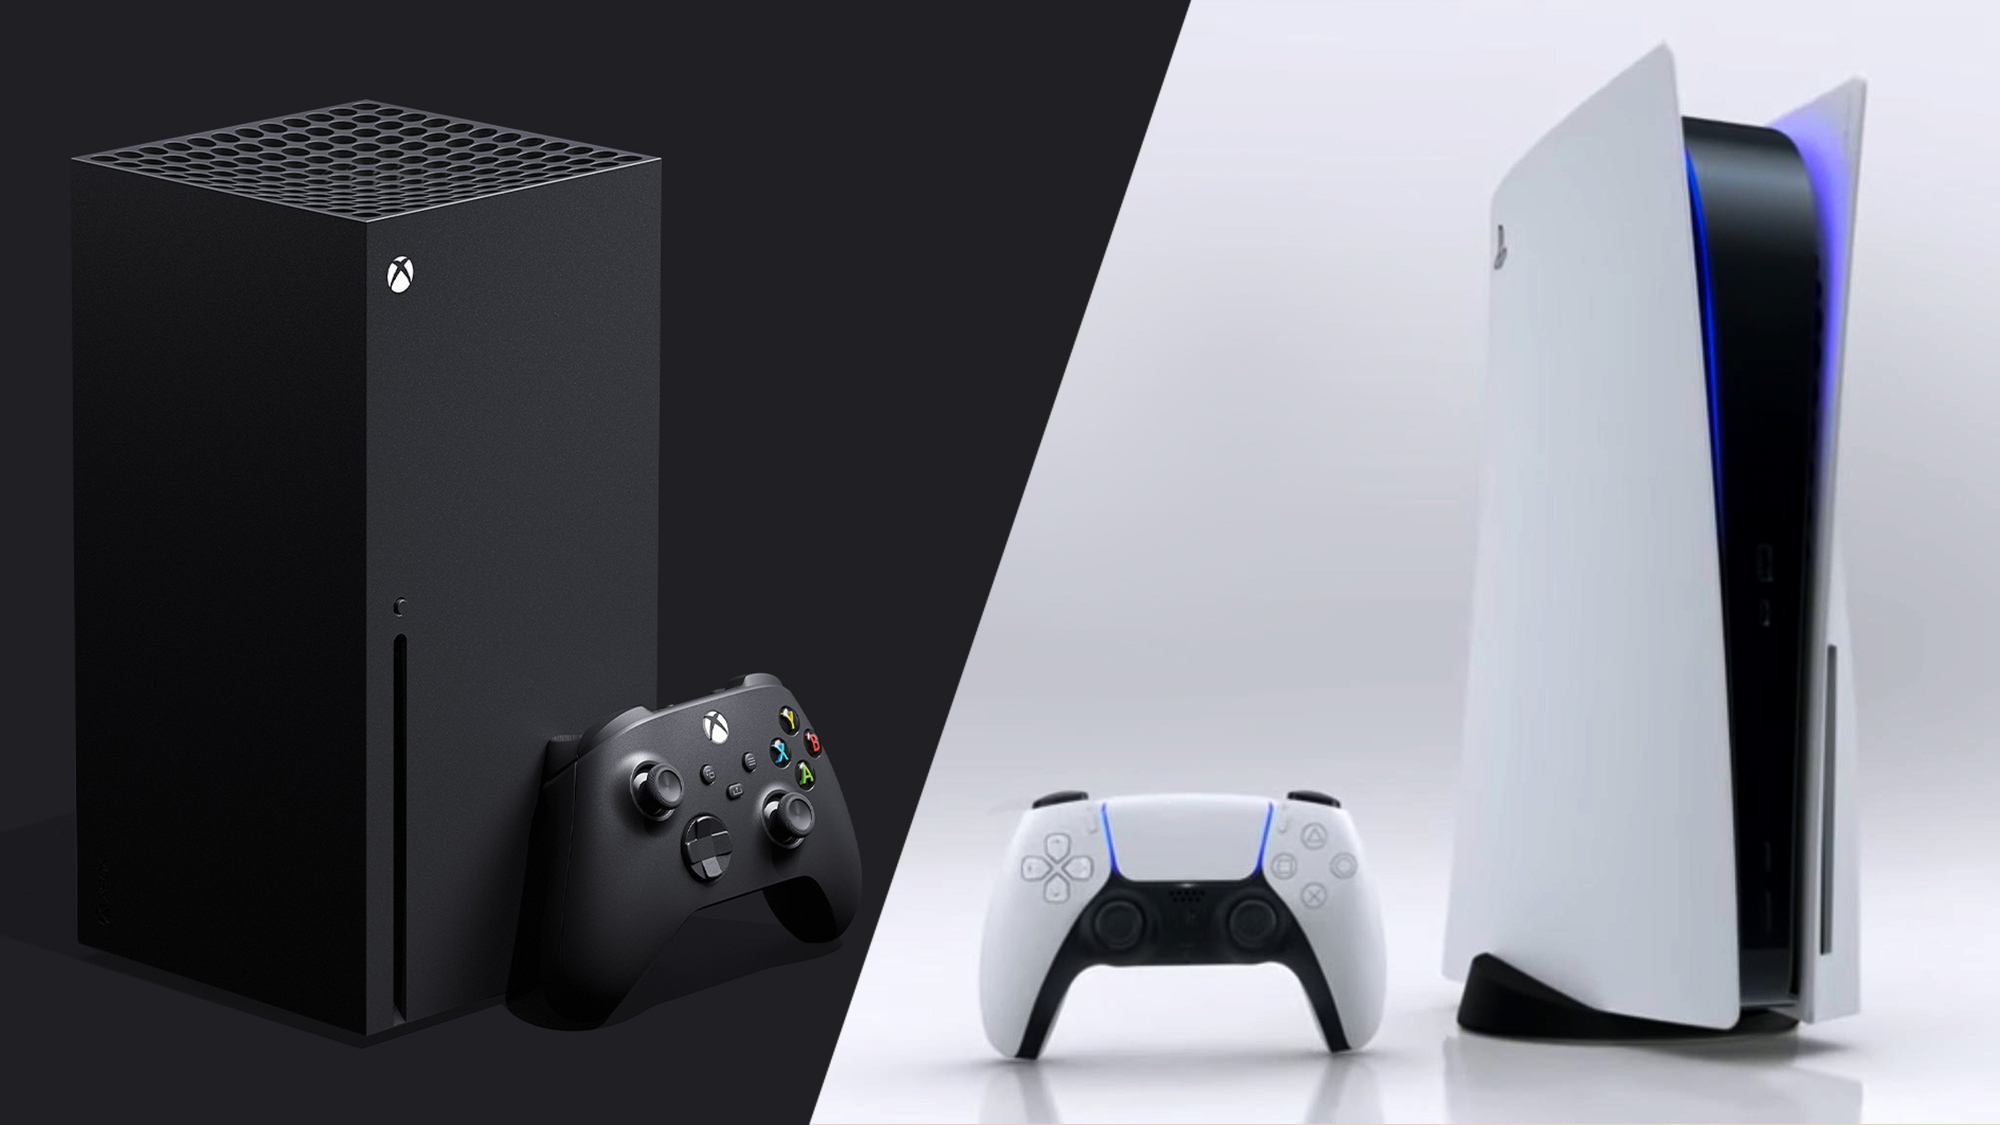 The Ninth Generation of Game Consoles is Kind of Absurd